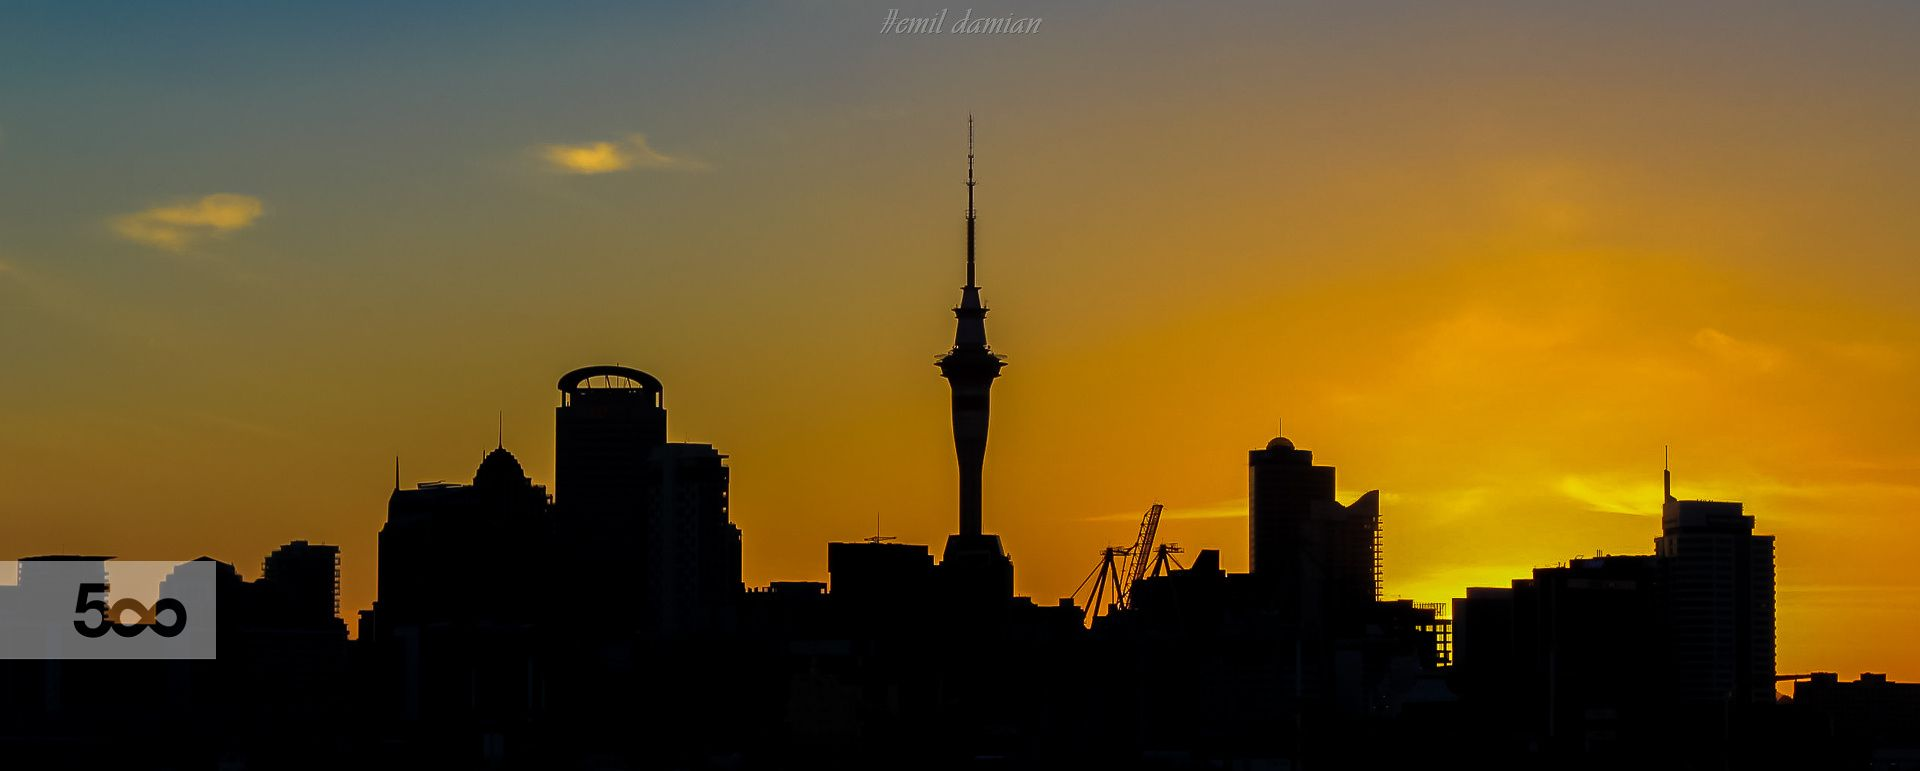 Silhouette Ii City Silhouette Auckland City Silhouette Sunset sky tower lights city night